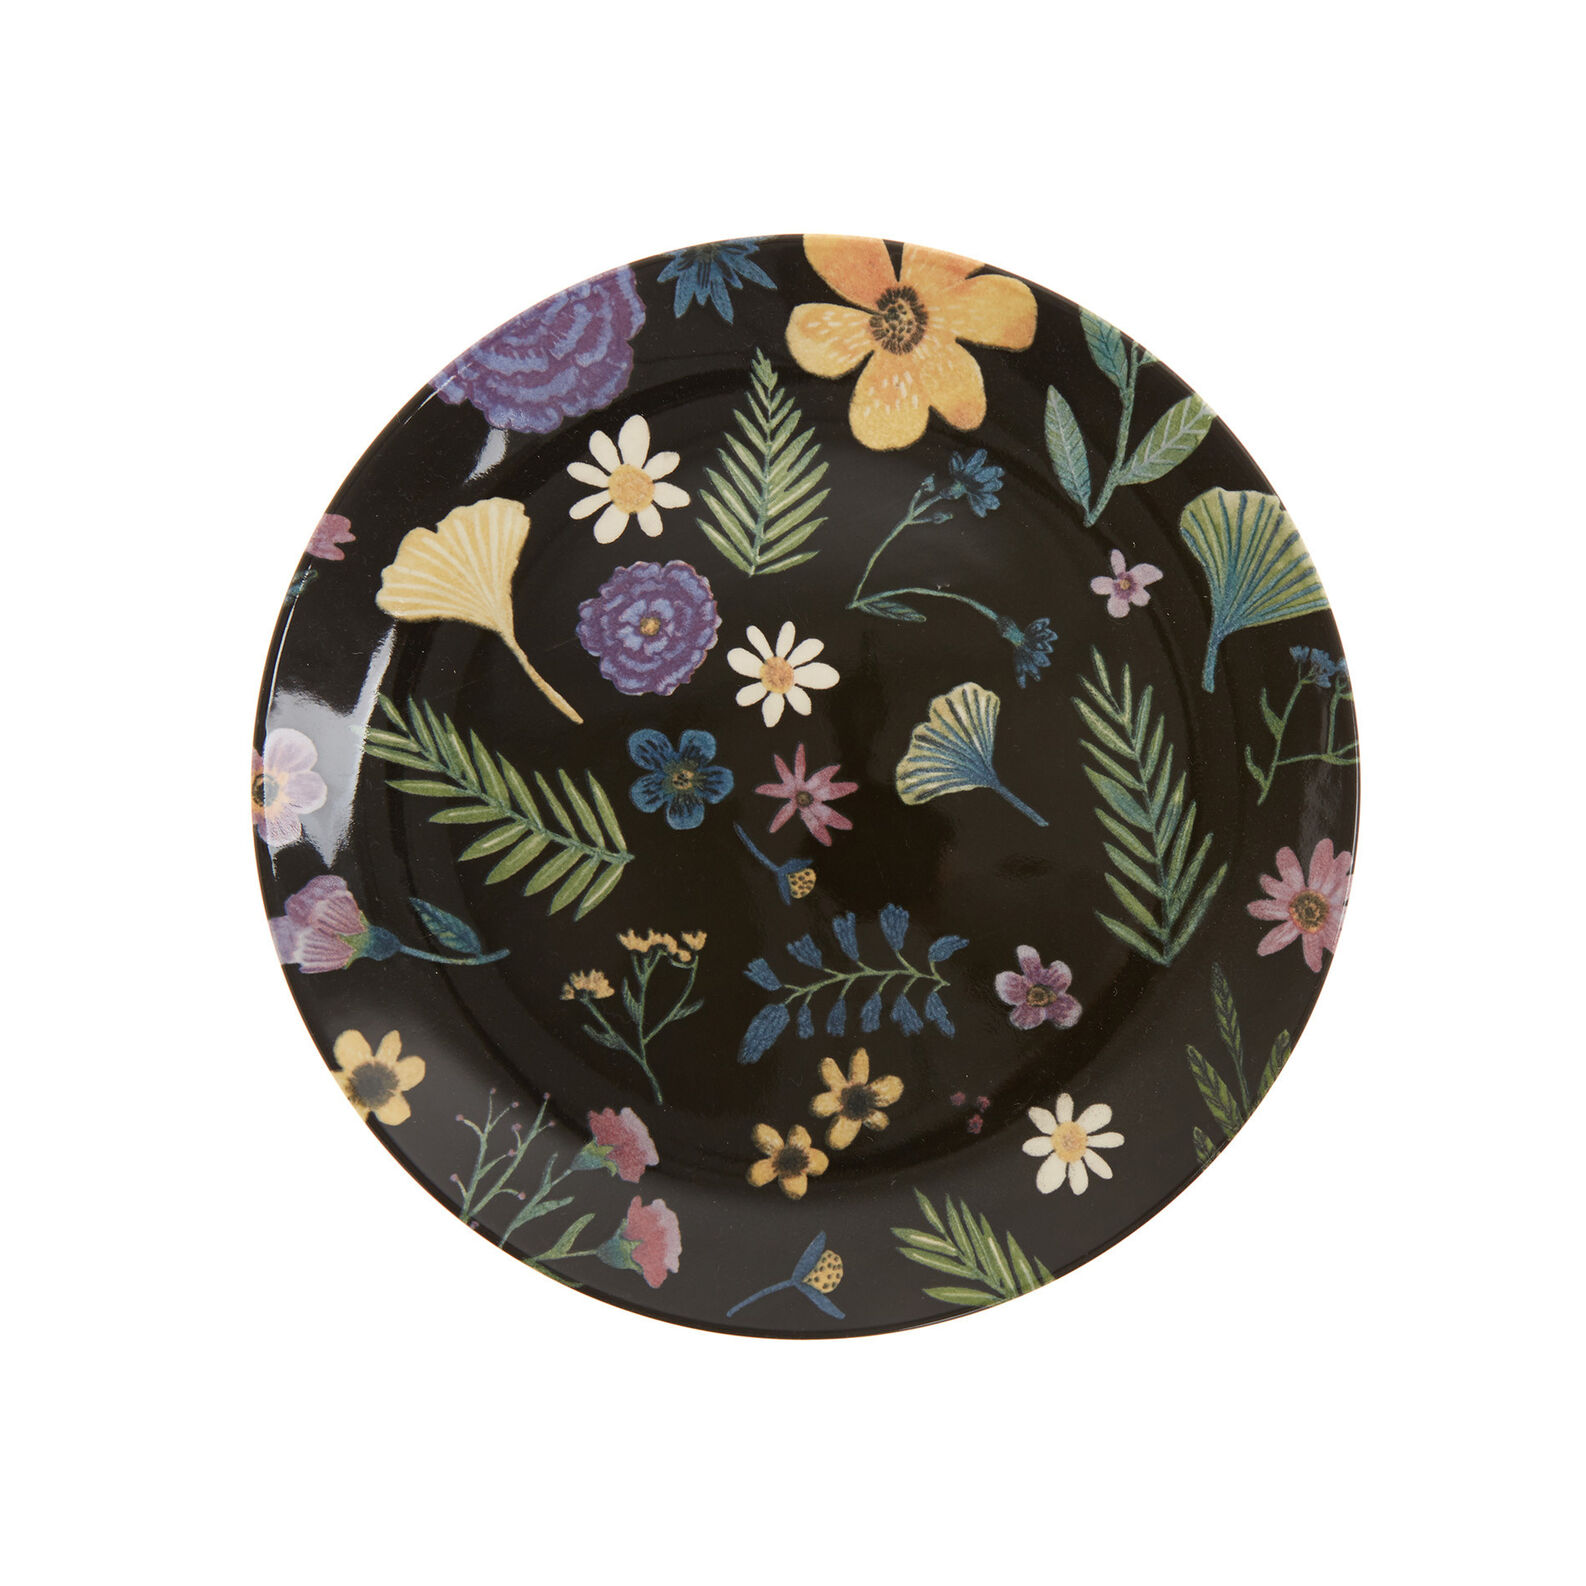 Ceramic plate with flowers print